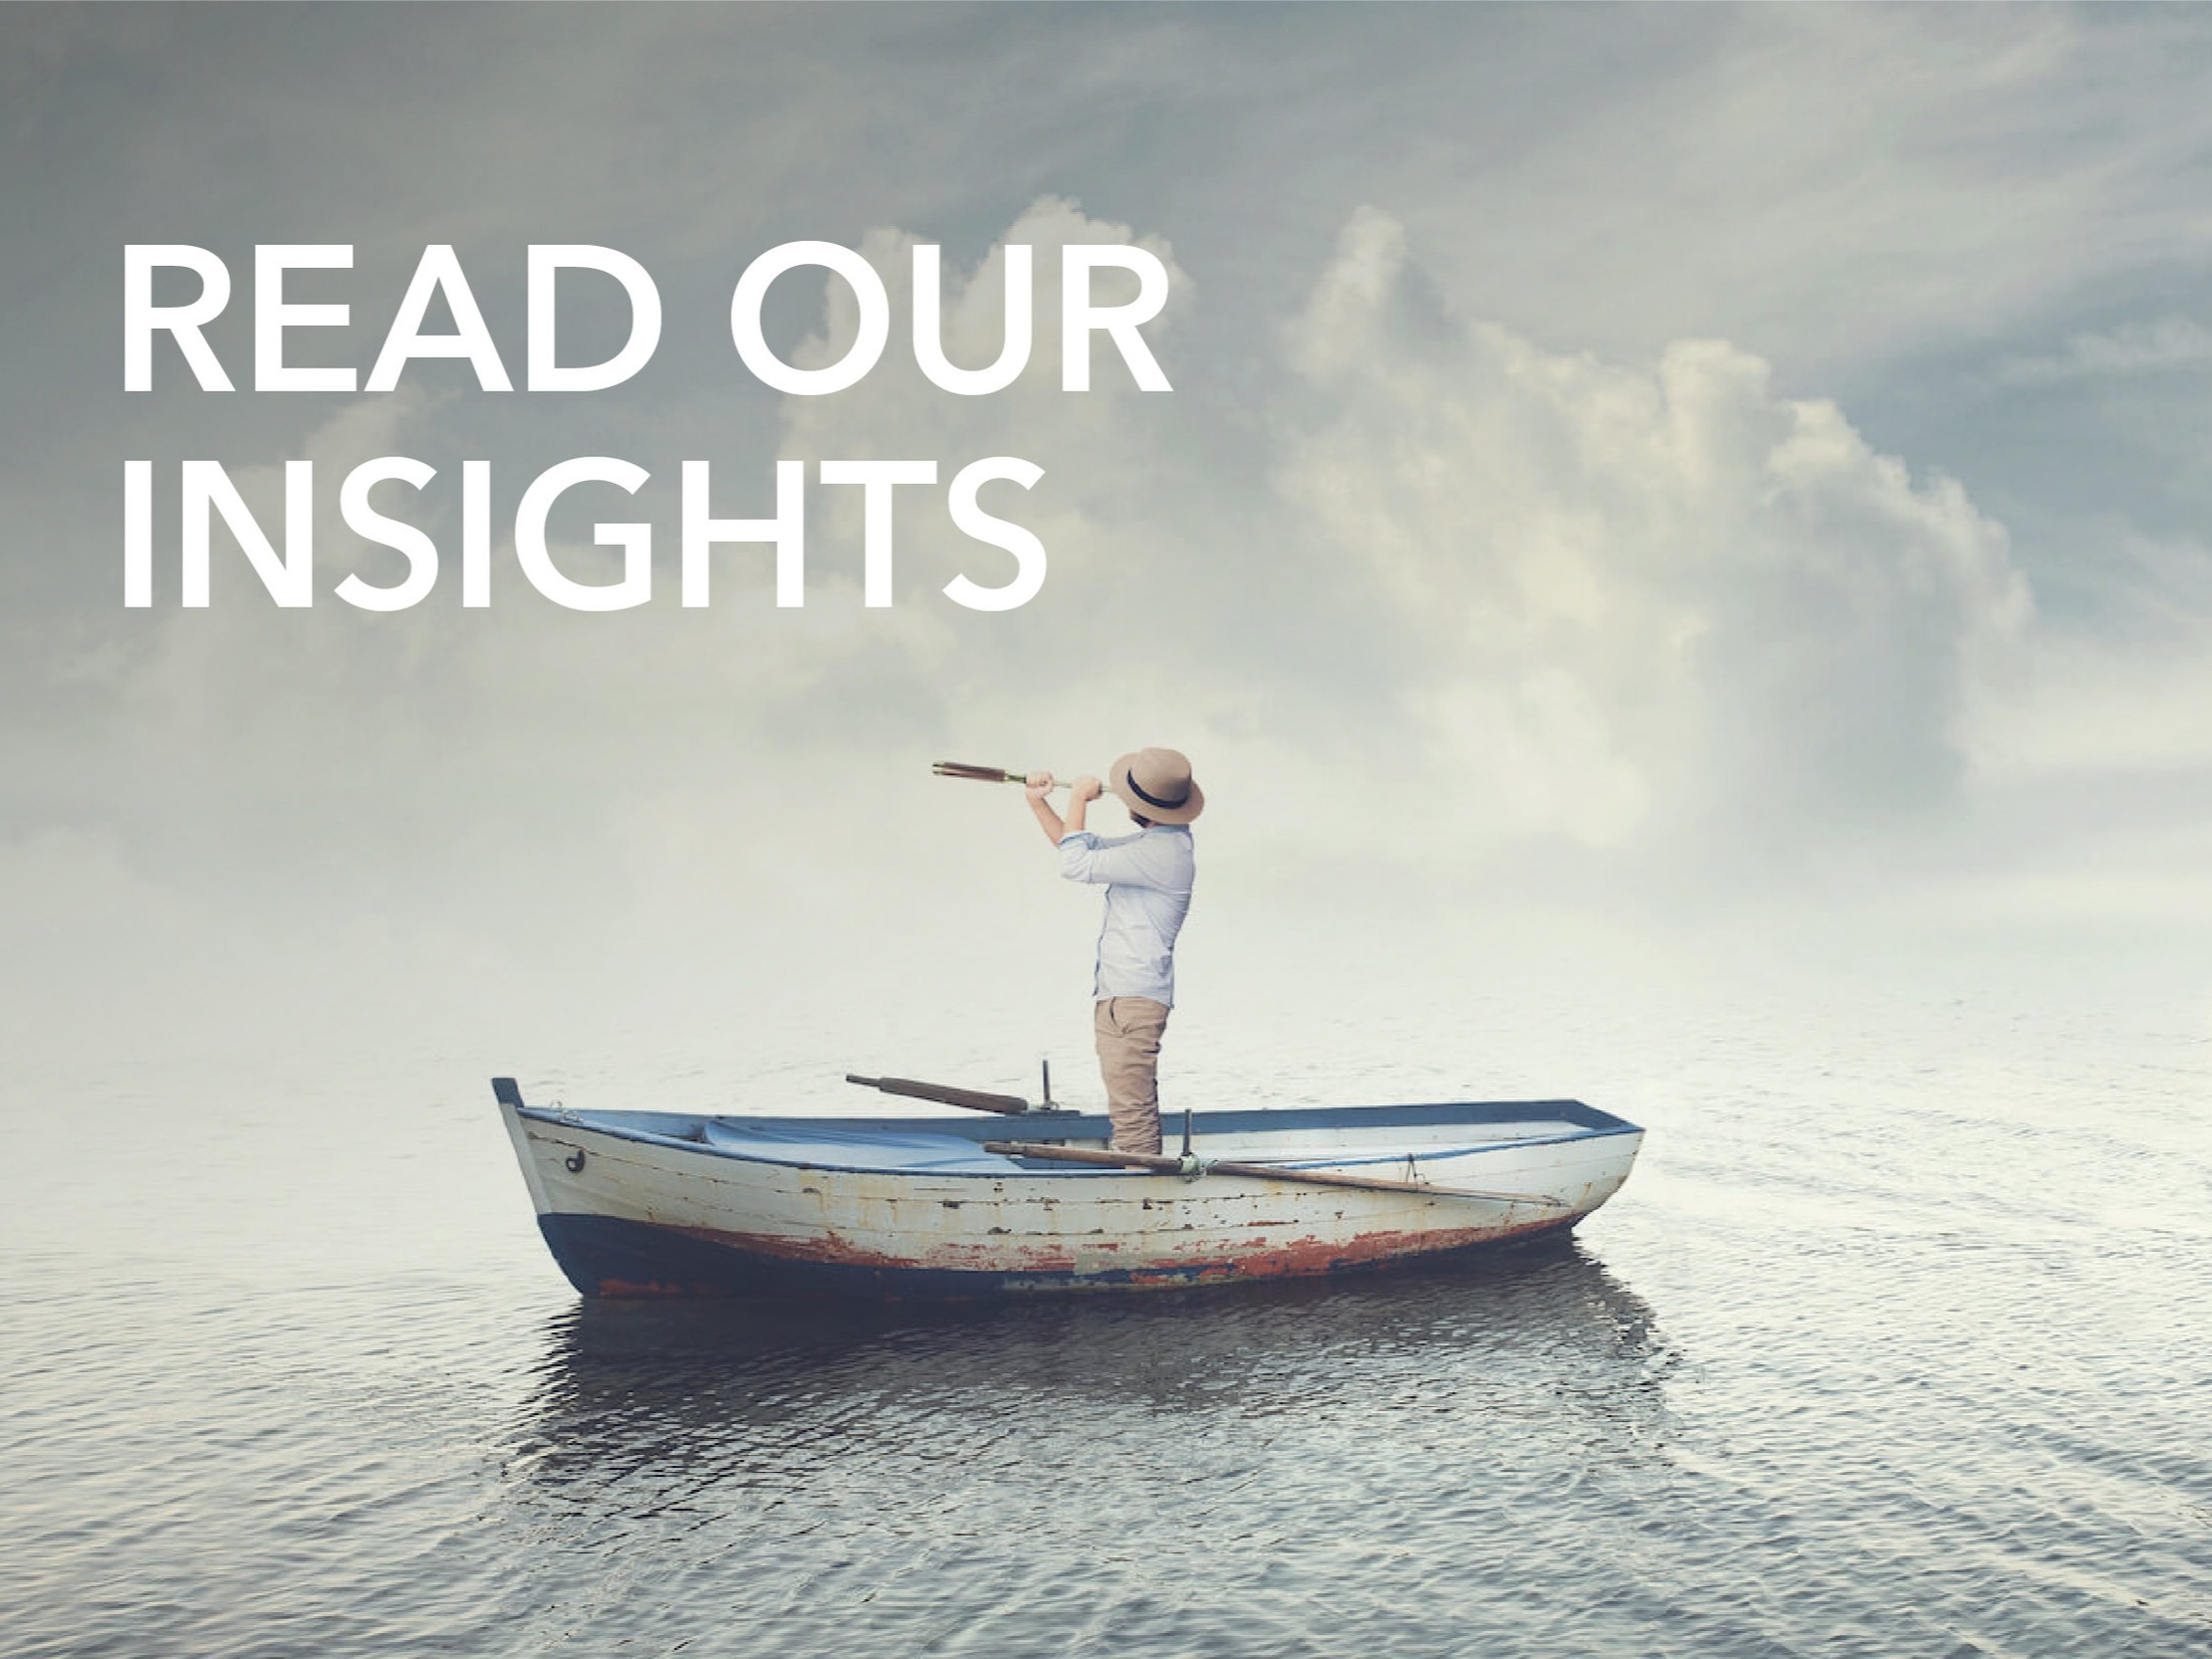 READ OUR INSIGHTS - Click below to read our insights on current developments in the law as well as legal solutions. Our Intellectual Property Trends blog provides our up-to-date thinking and insights regarding the legal services we provide.